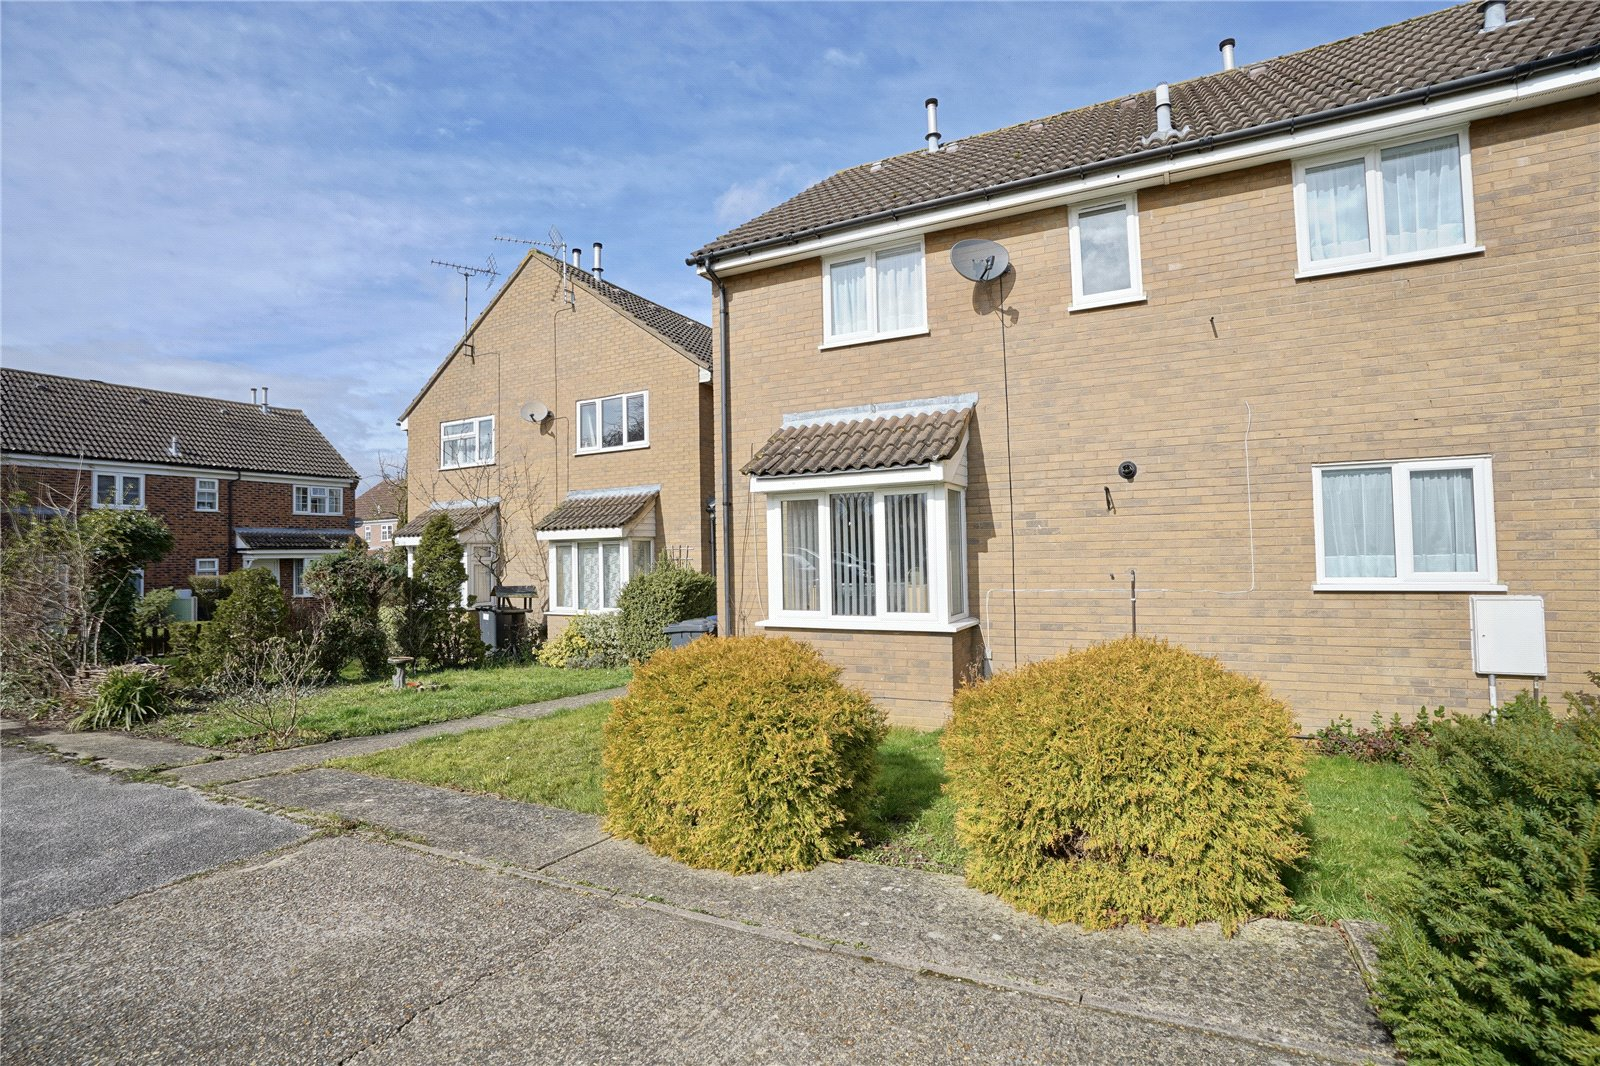 2 bed house for sale in St. Ives, PE27 3FN - Property Image 1